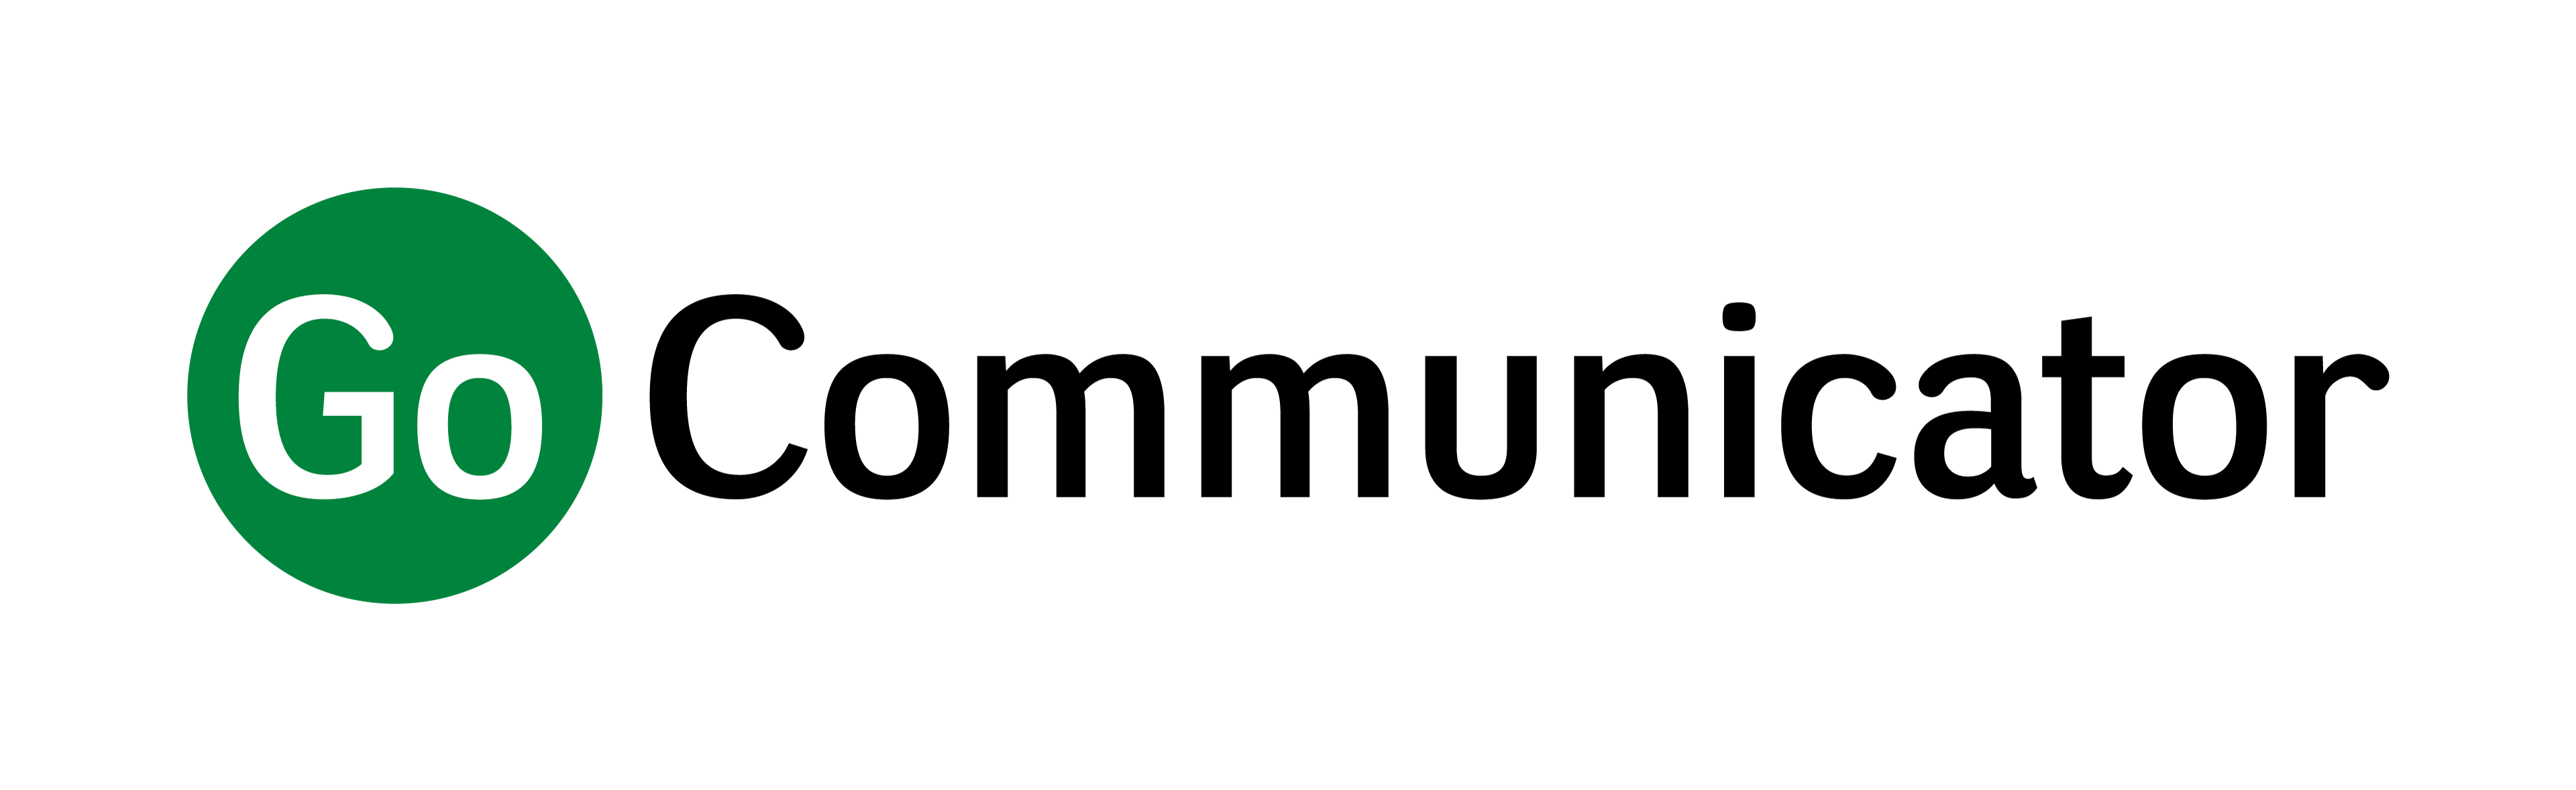 Go Communicator